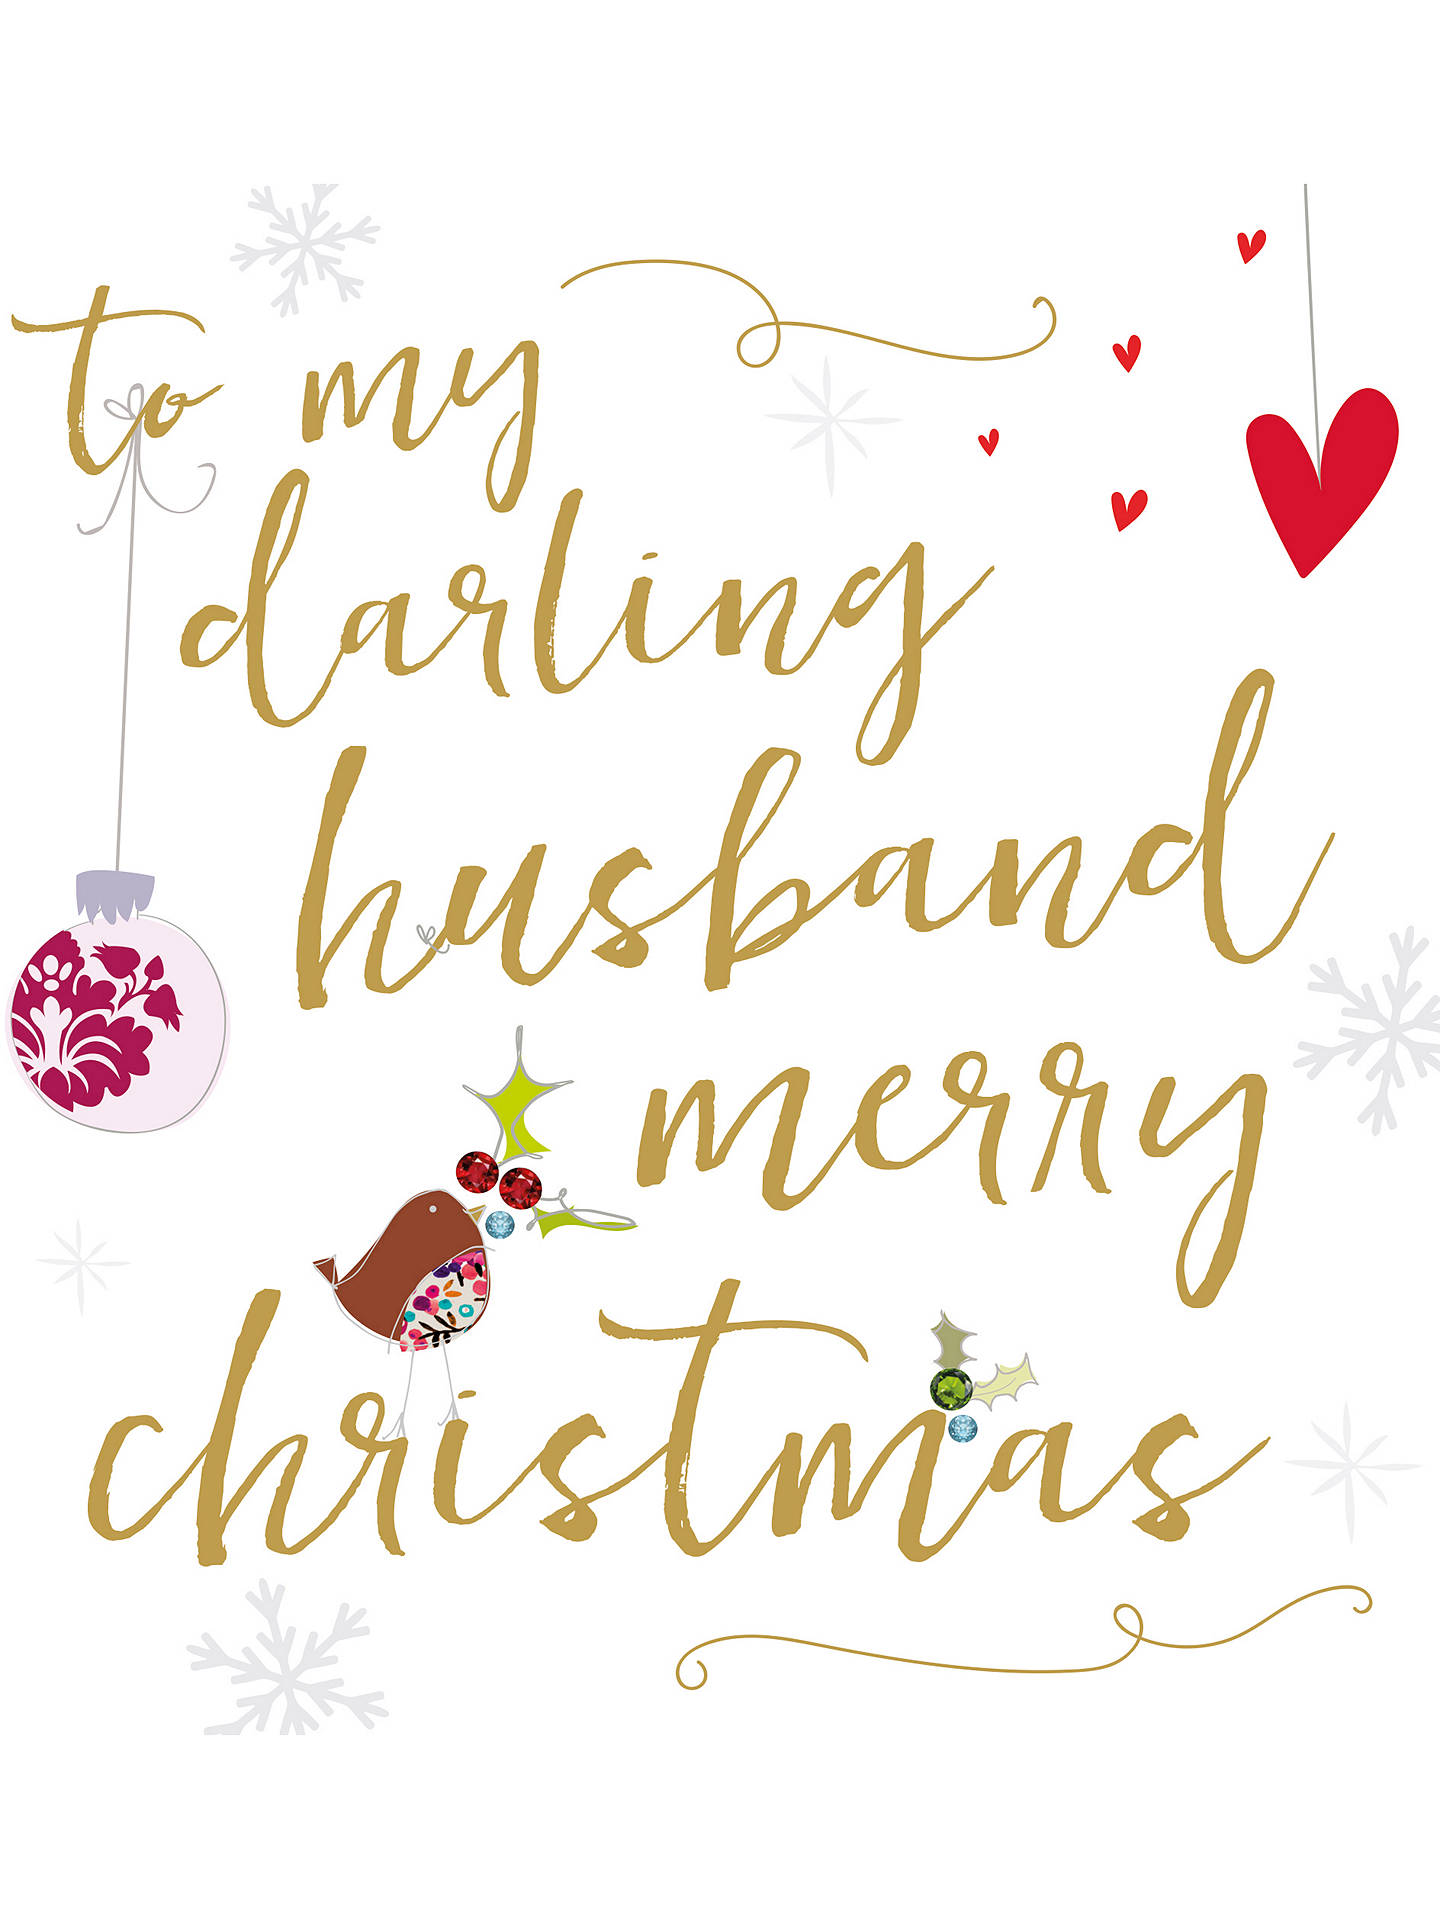 Husband Christmas Cards.Caroline Gardner Ritz Husband Christmas Card At John Lewis